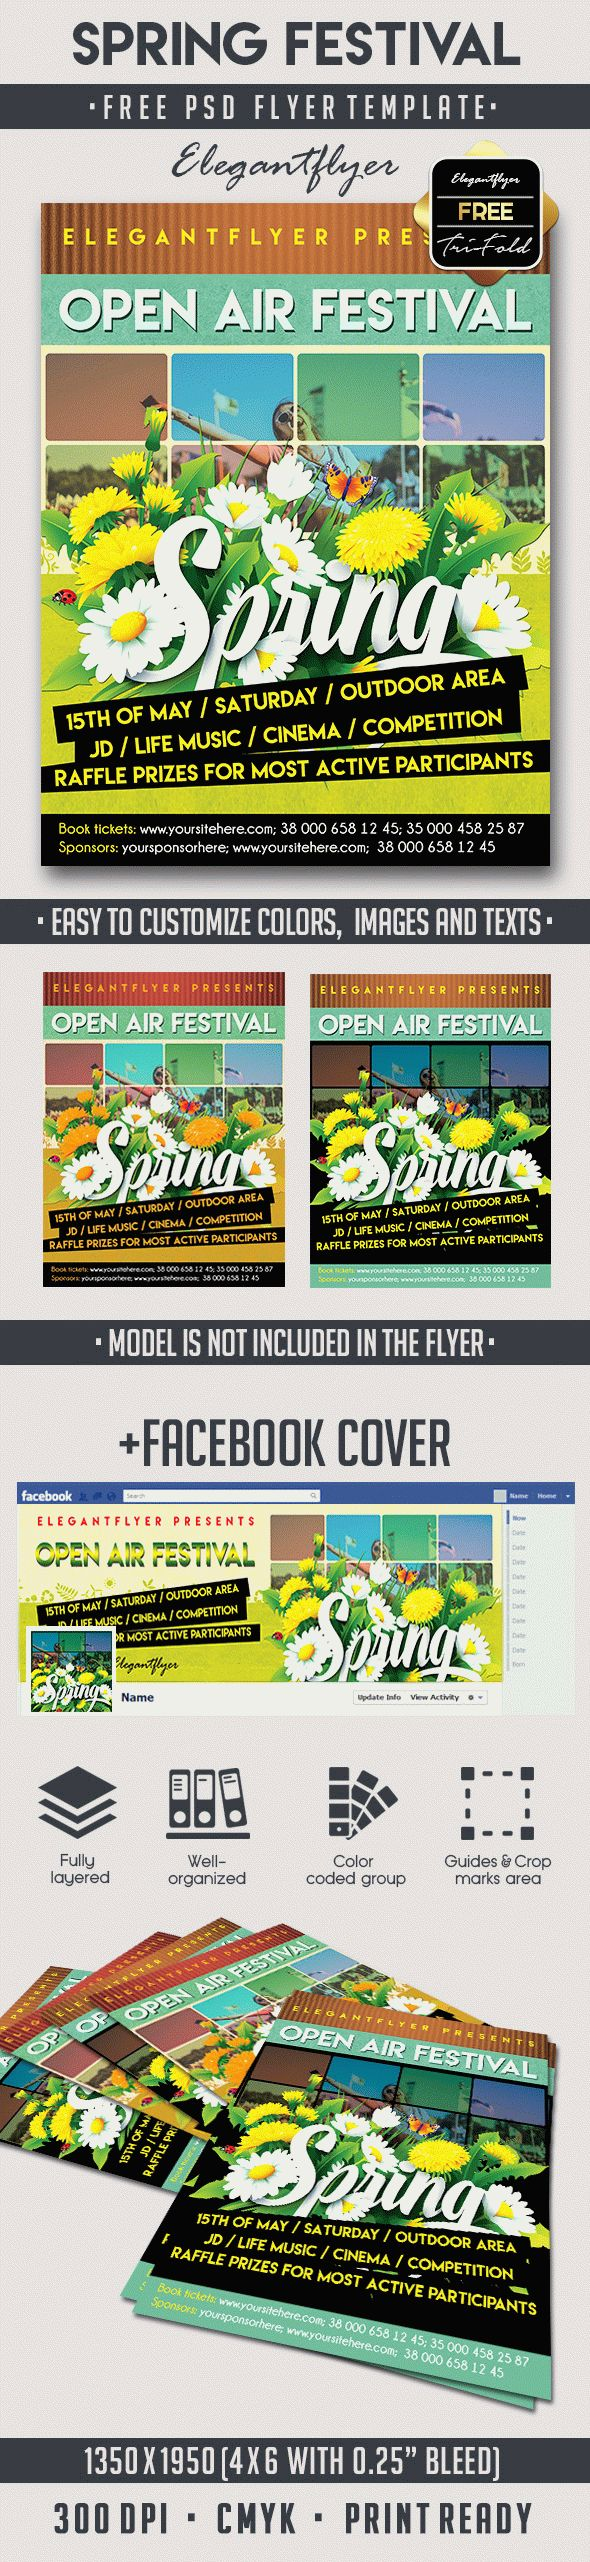 spring festival psd flyer template by elegantflyer spring festival psd flyer template